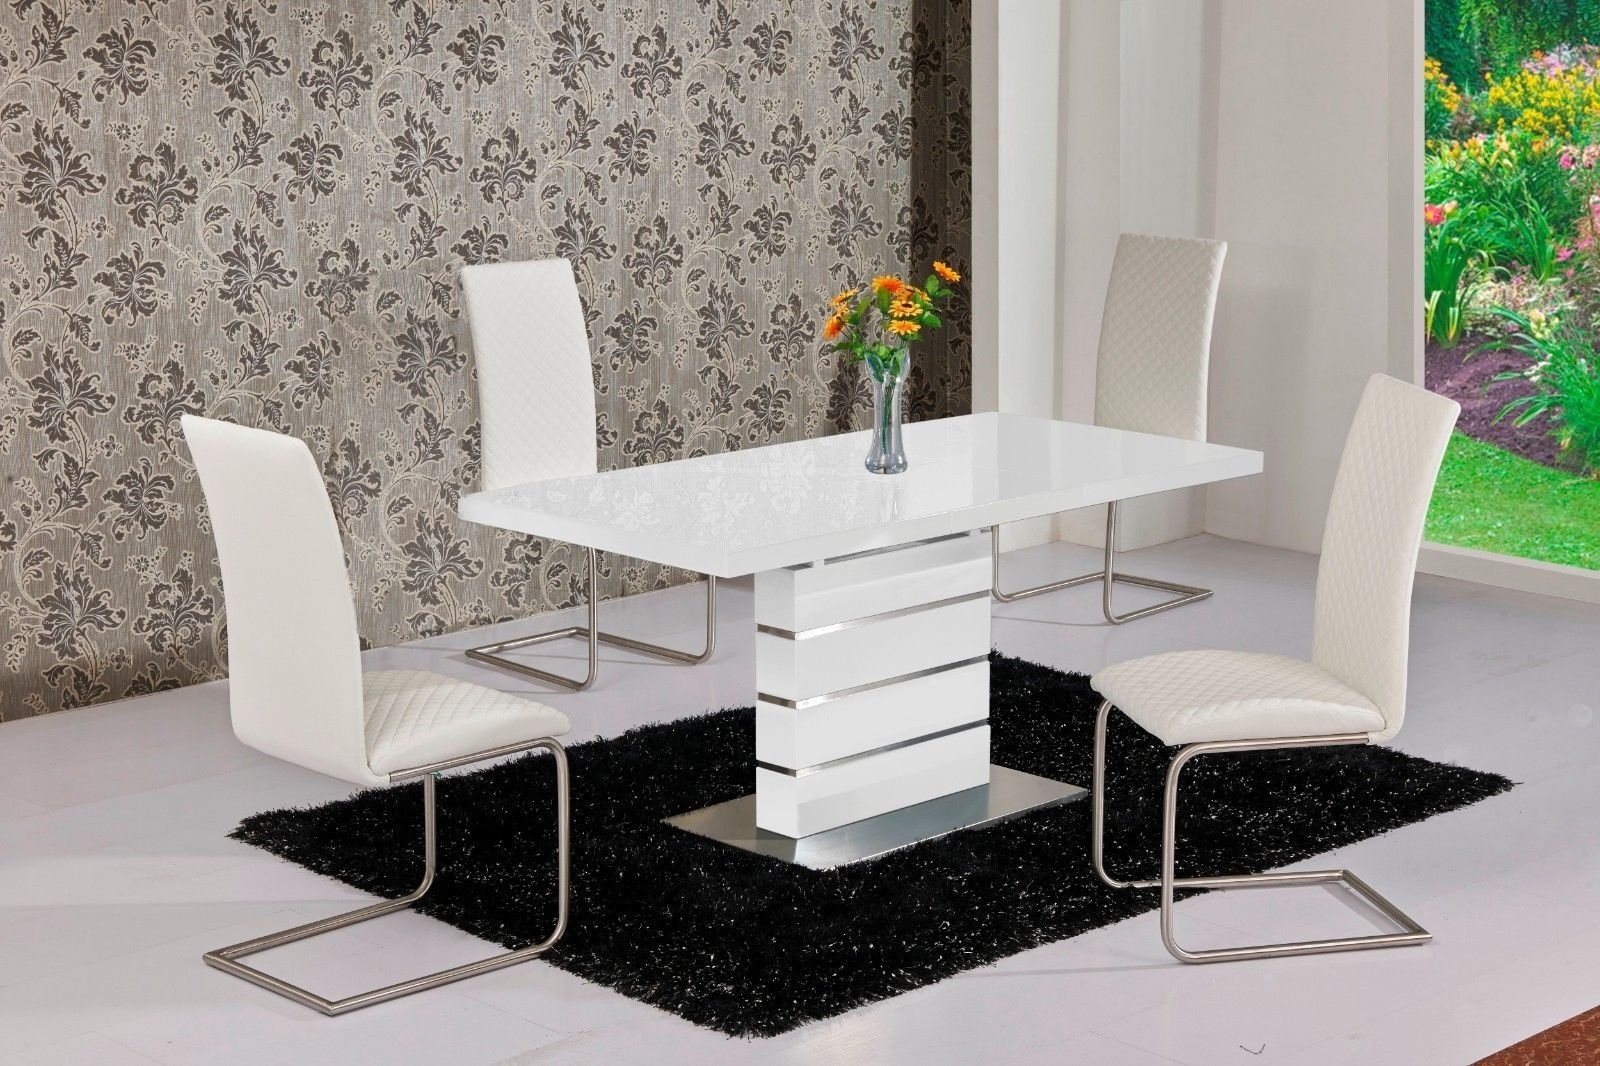 2018 White Gloss Extending Dining Tables With Regard To Mace High Gloss Extending 120 160 Dining Table & Chair Set – White (Gallery 3 of 25)